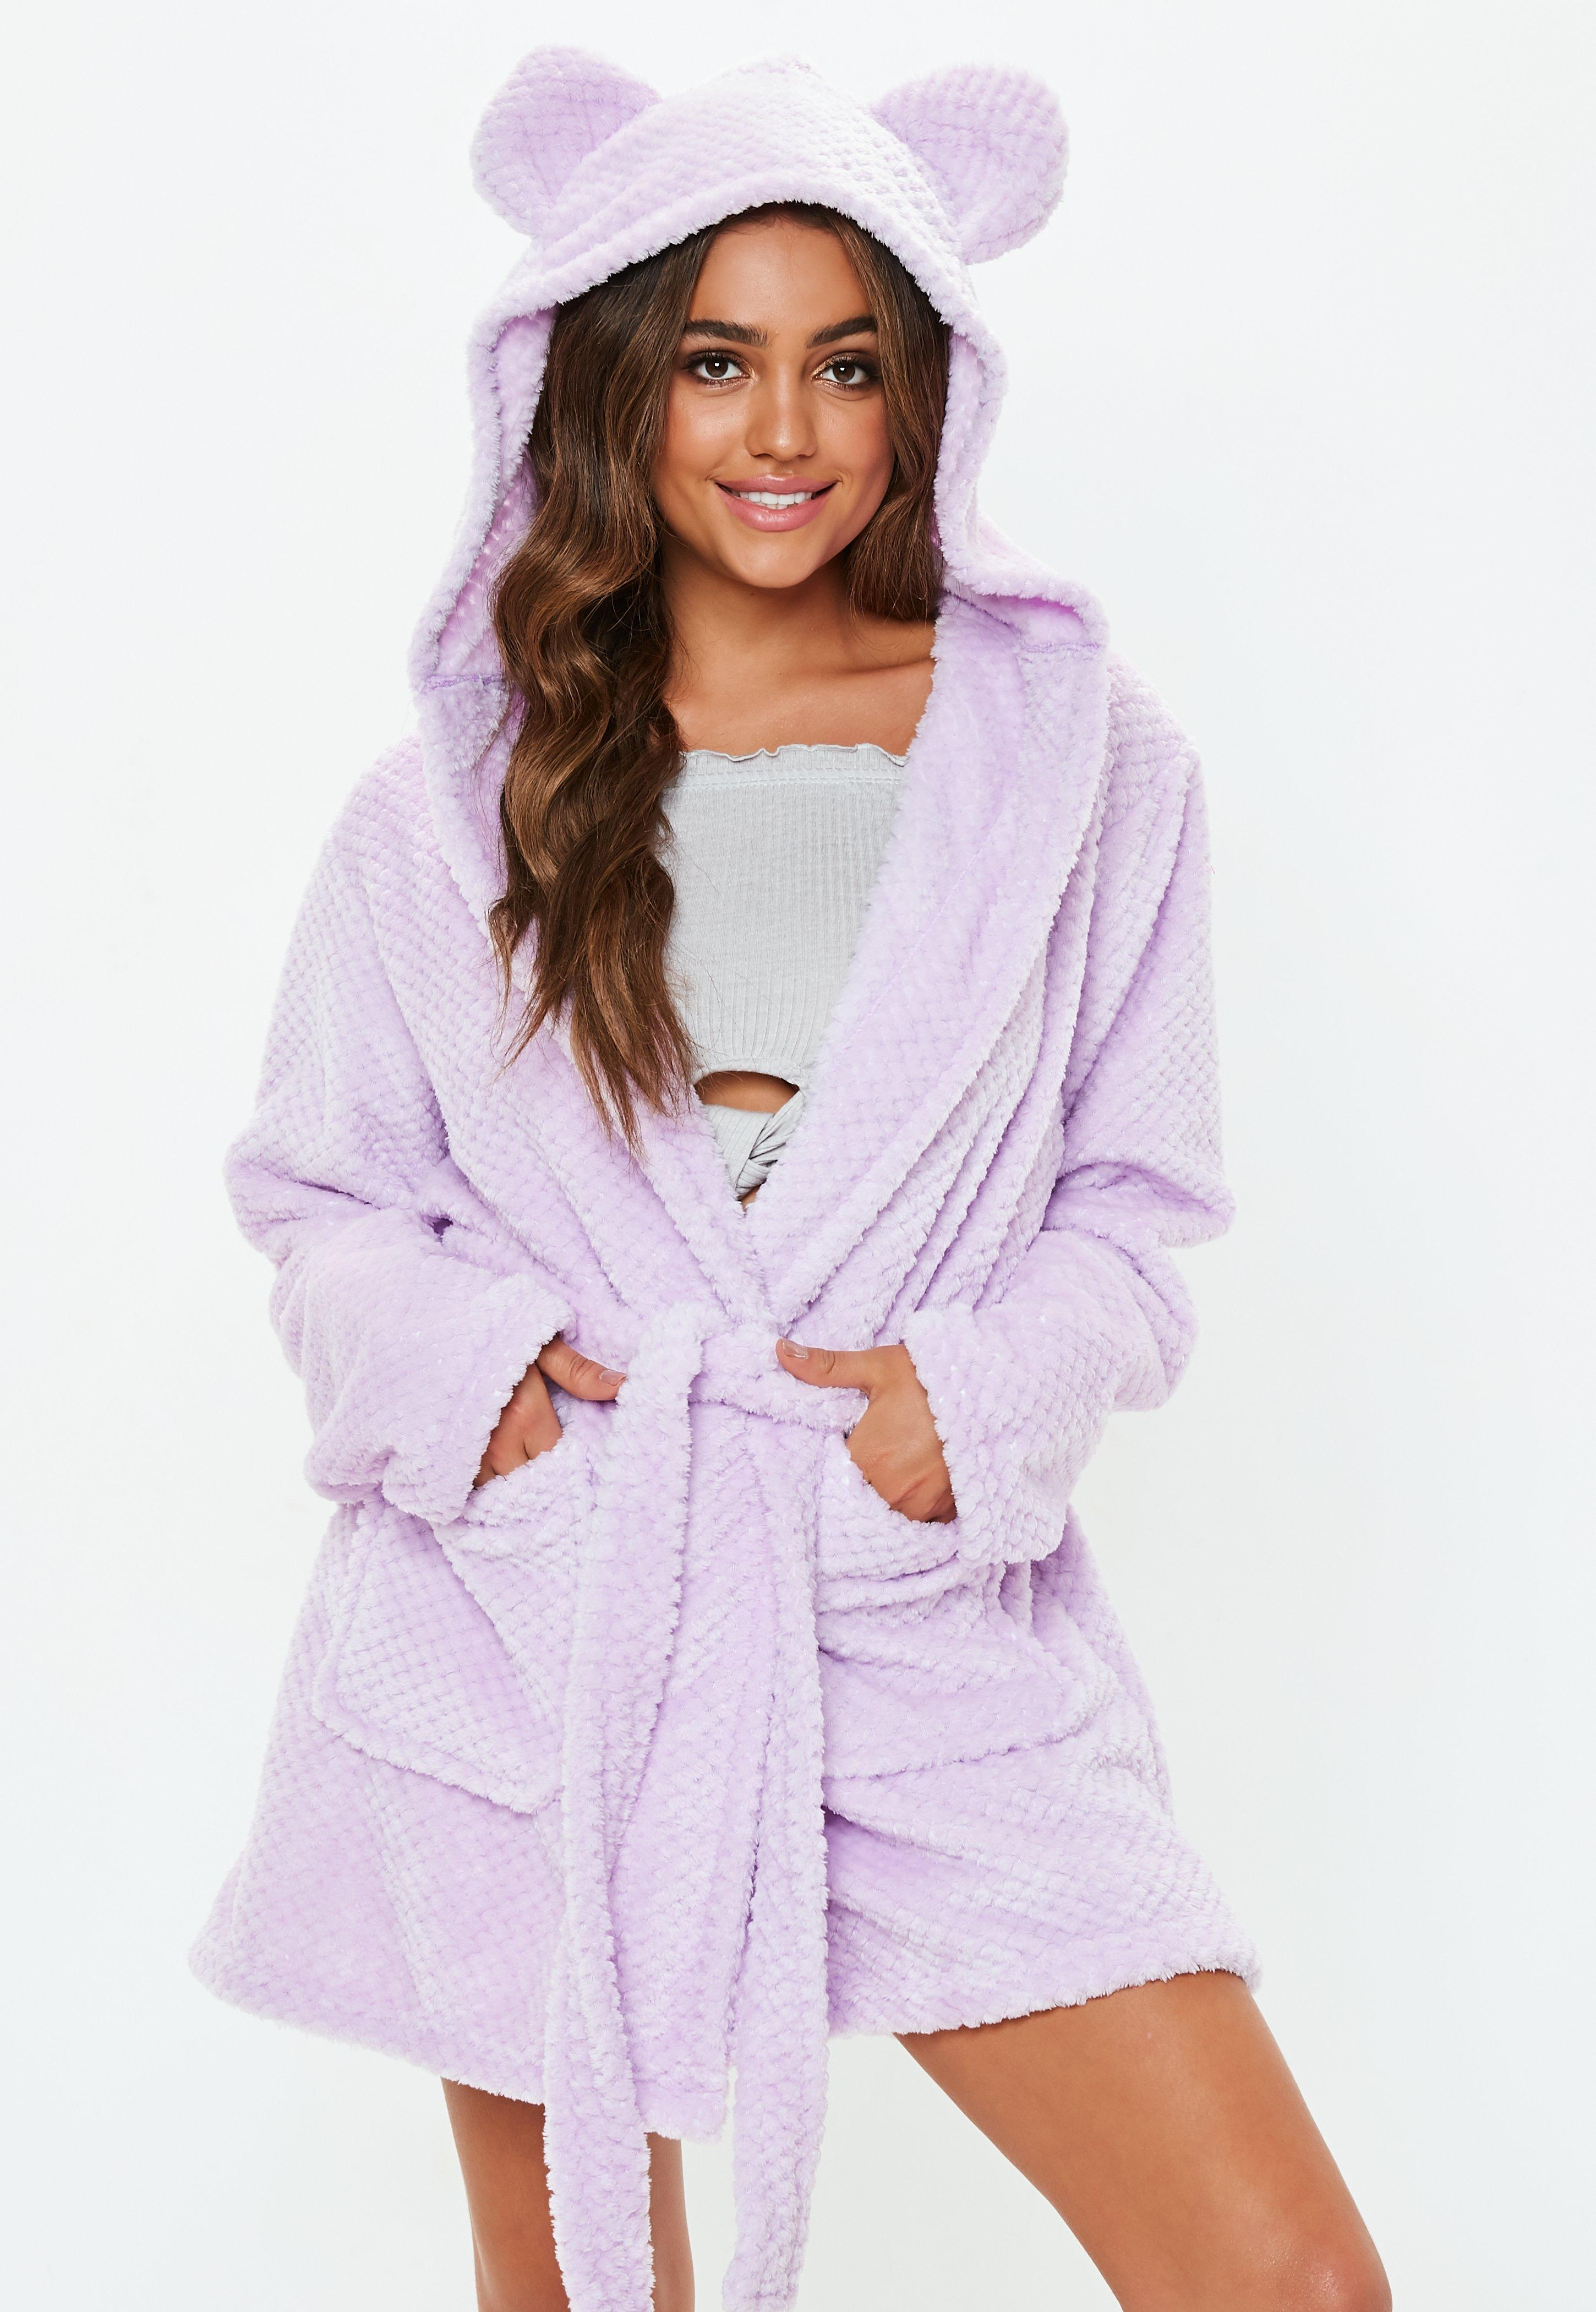 Nightwear | Shop Women\'s Sleepwear Online - Missguided